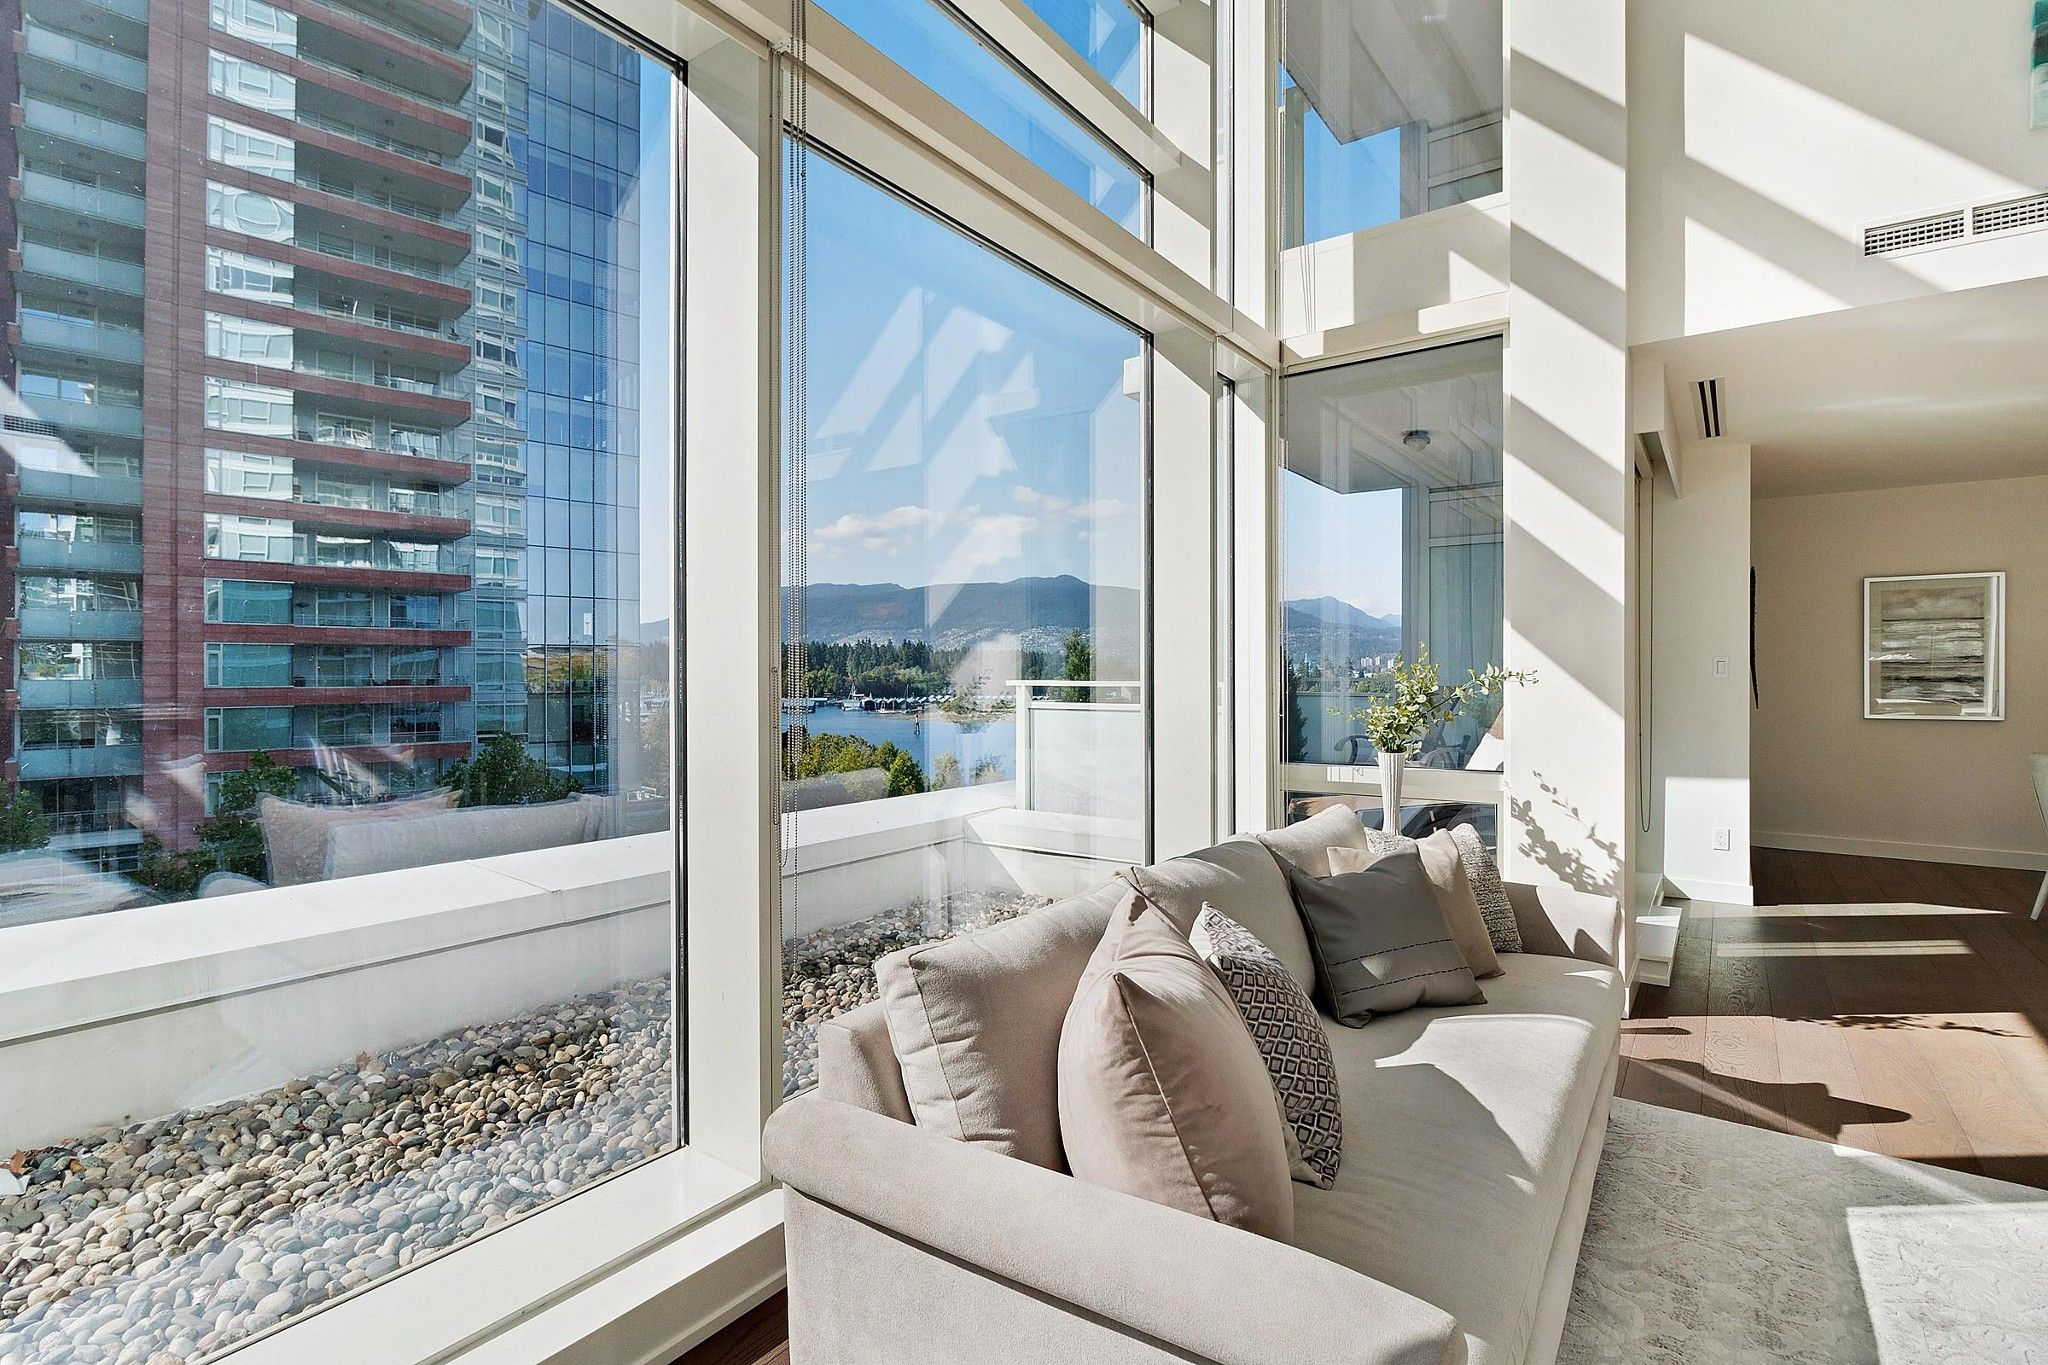 "Photo 9: Photos: 504 1139 W CORDOVA Street in Vancouver: Coal Harbour Condo for sale in ""Two Harbor Green"" (Vancouver West)  : MLS®# R2398290"